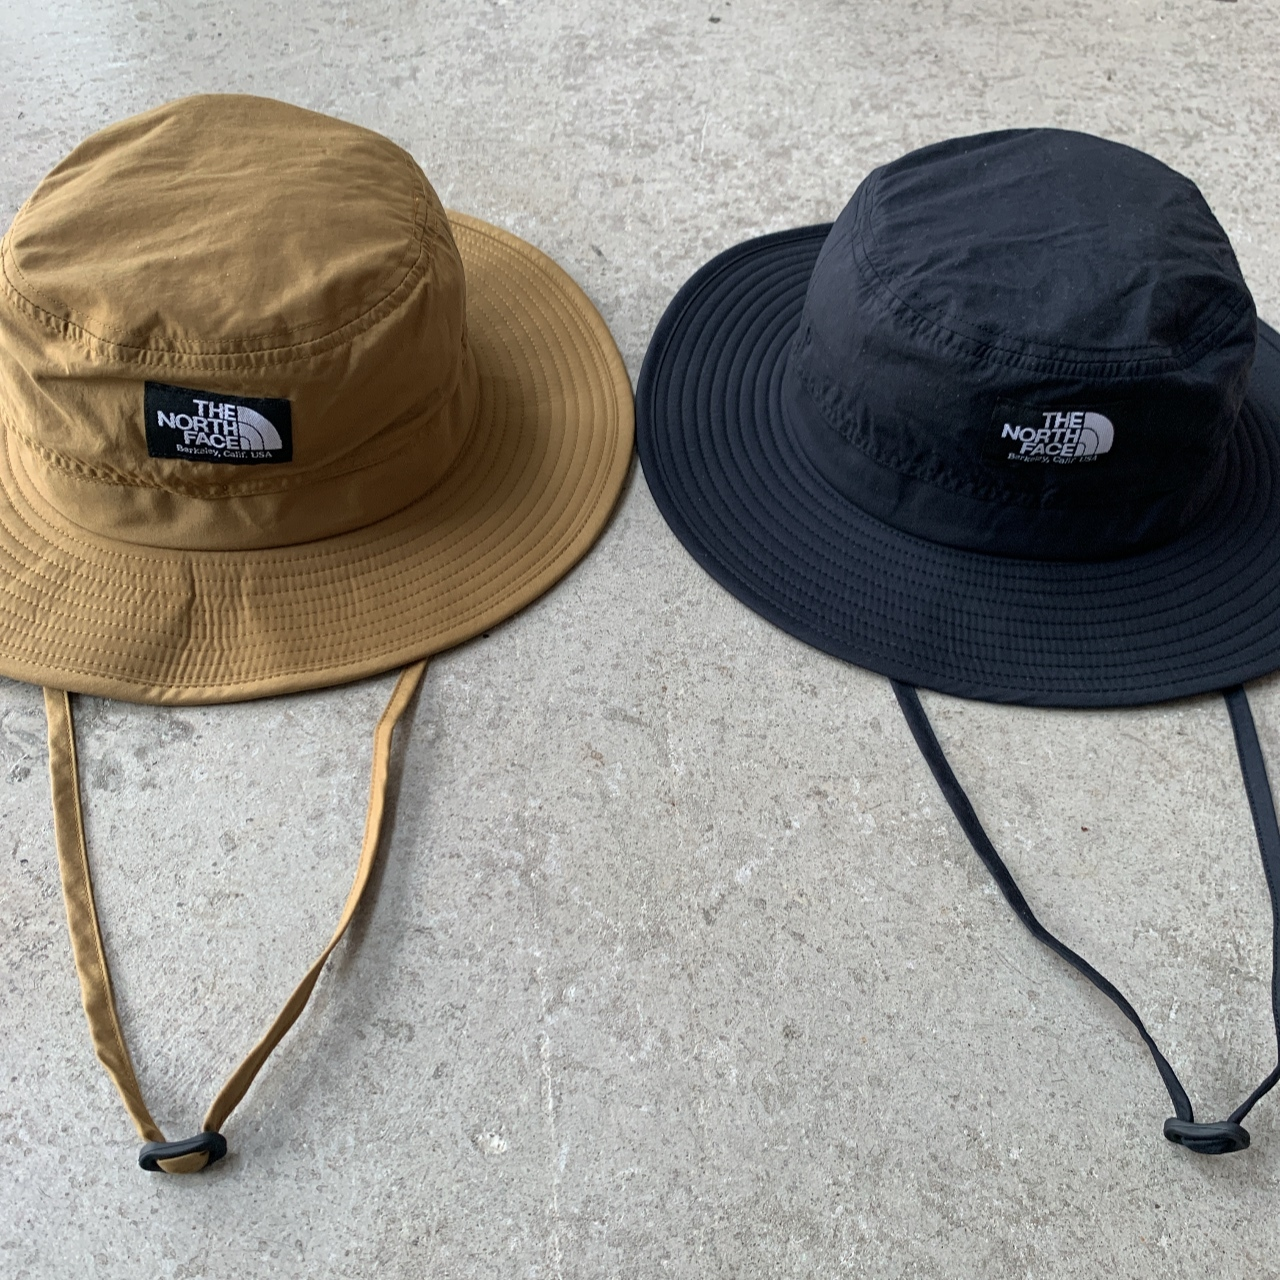 THE NORTH FACE - S/S Horizon Hat